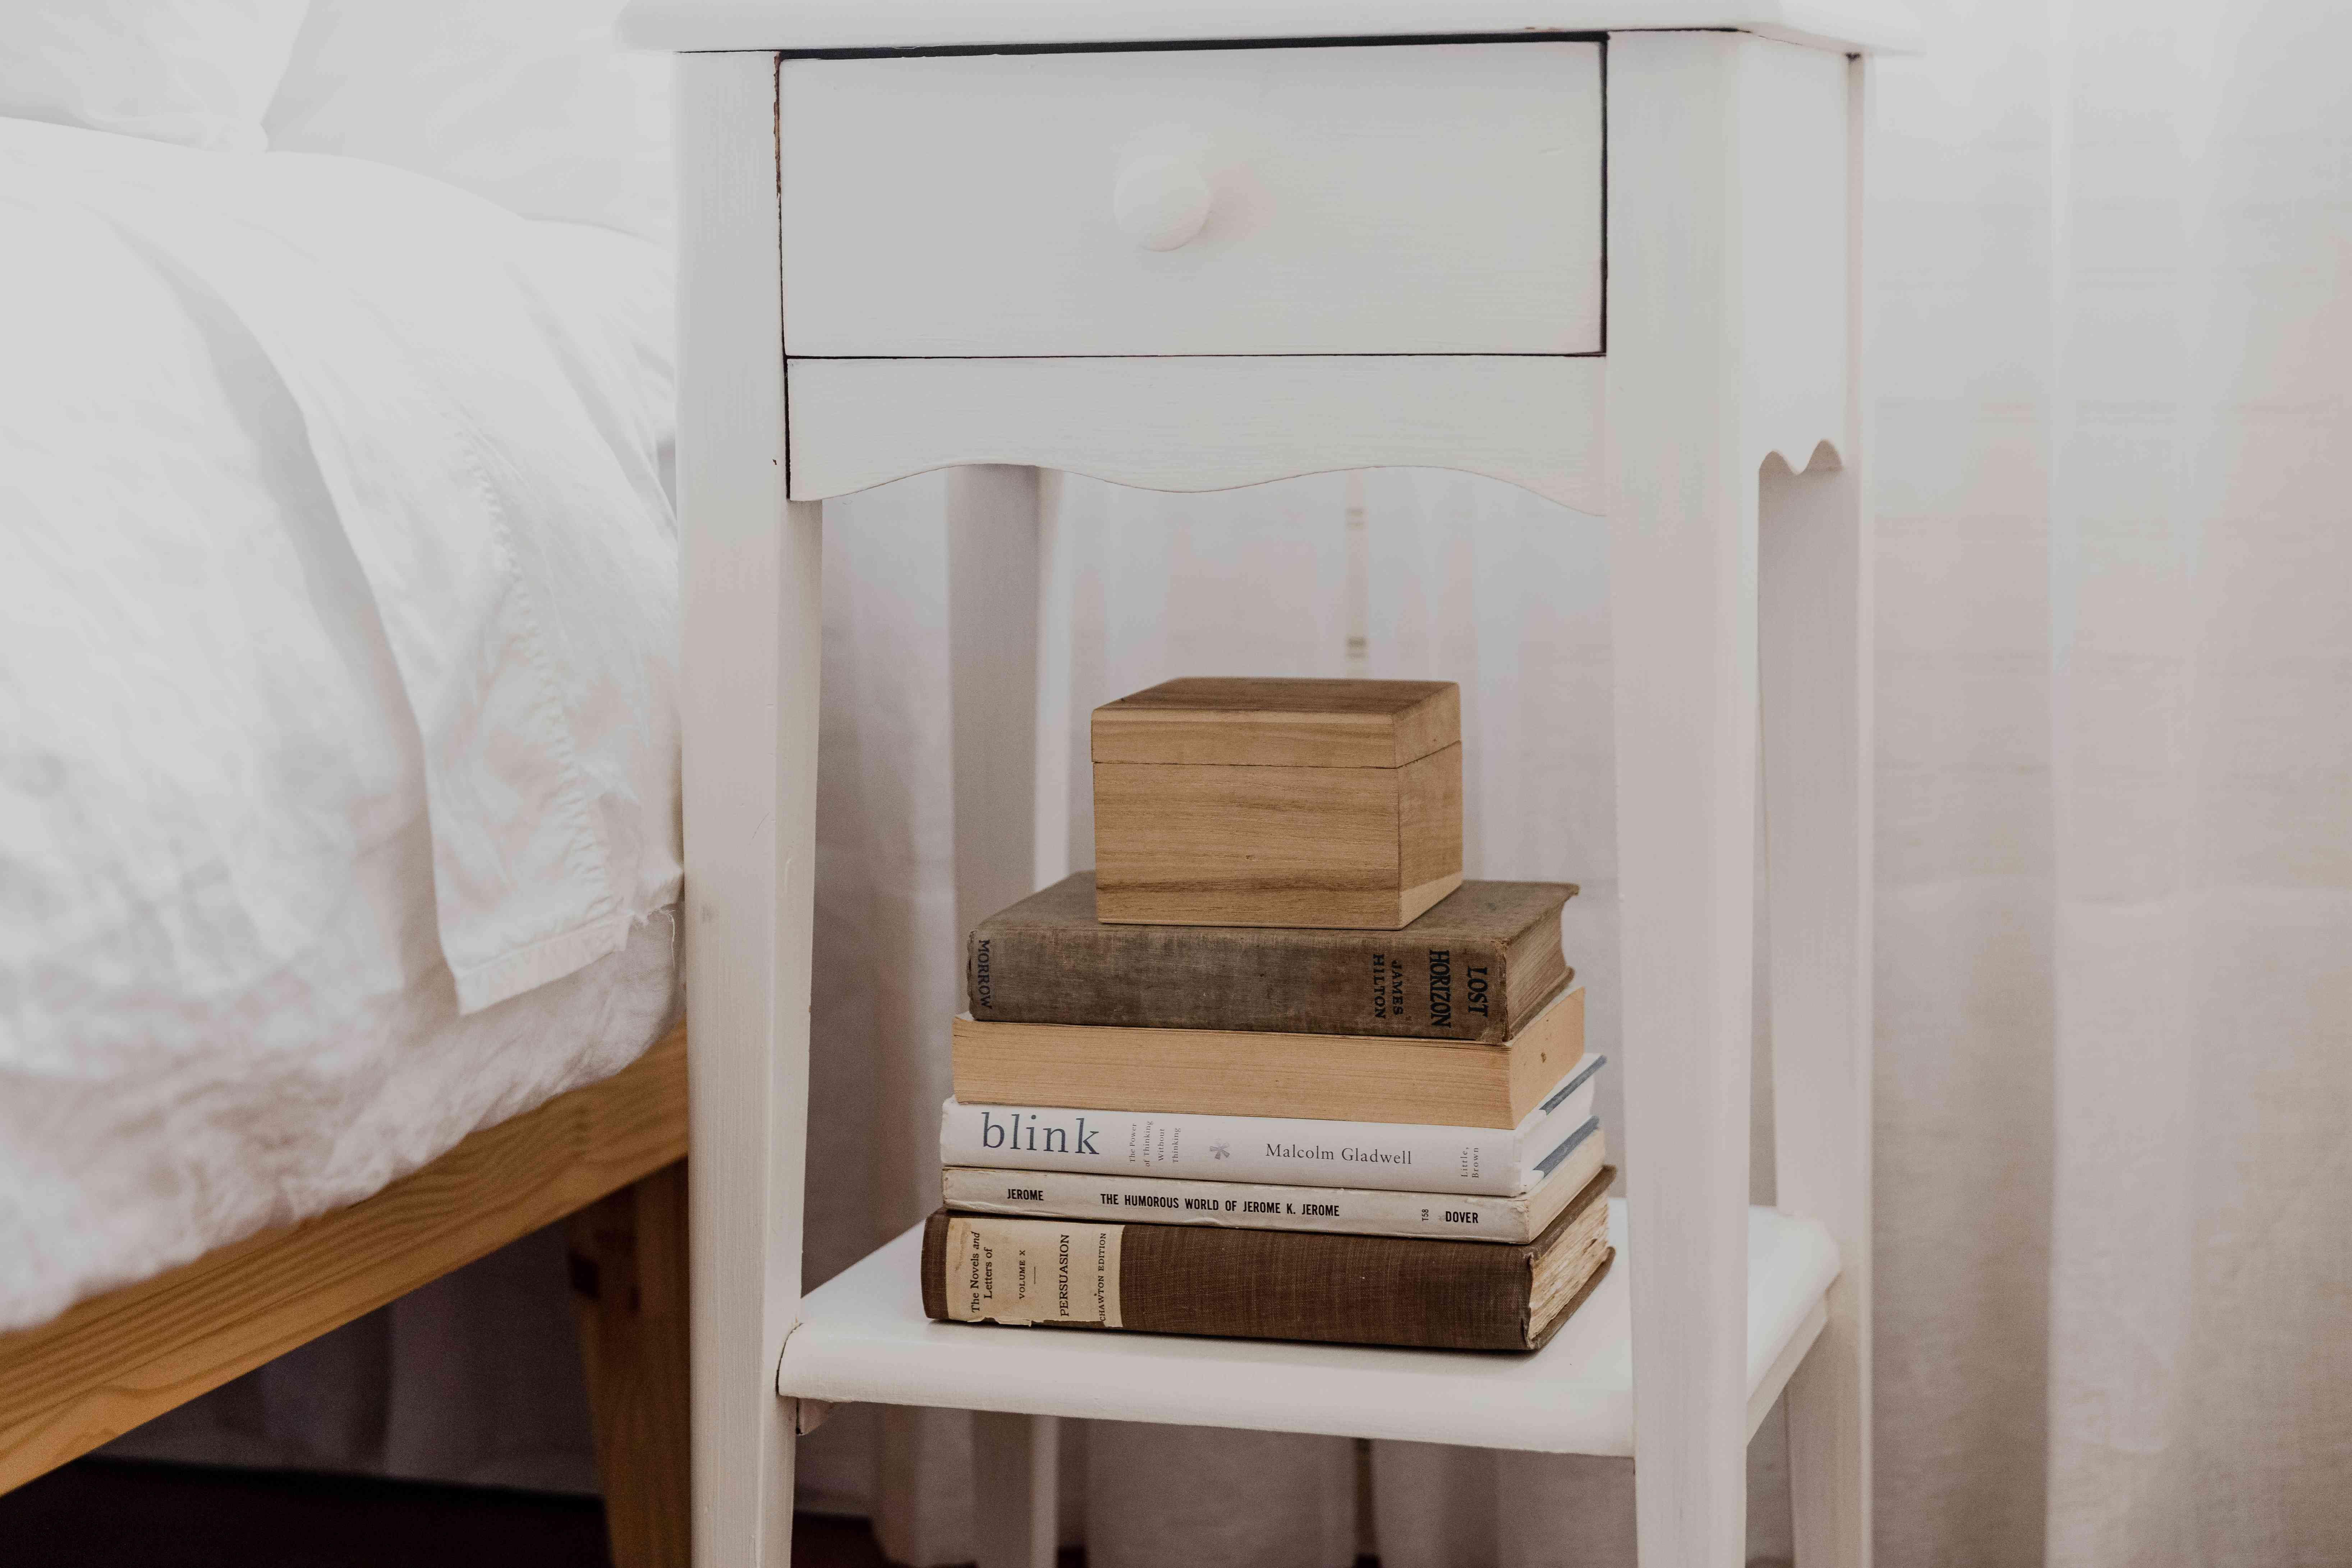 Books stacked on lower shelf of nightstand with wooden box on top